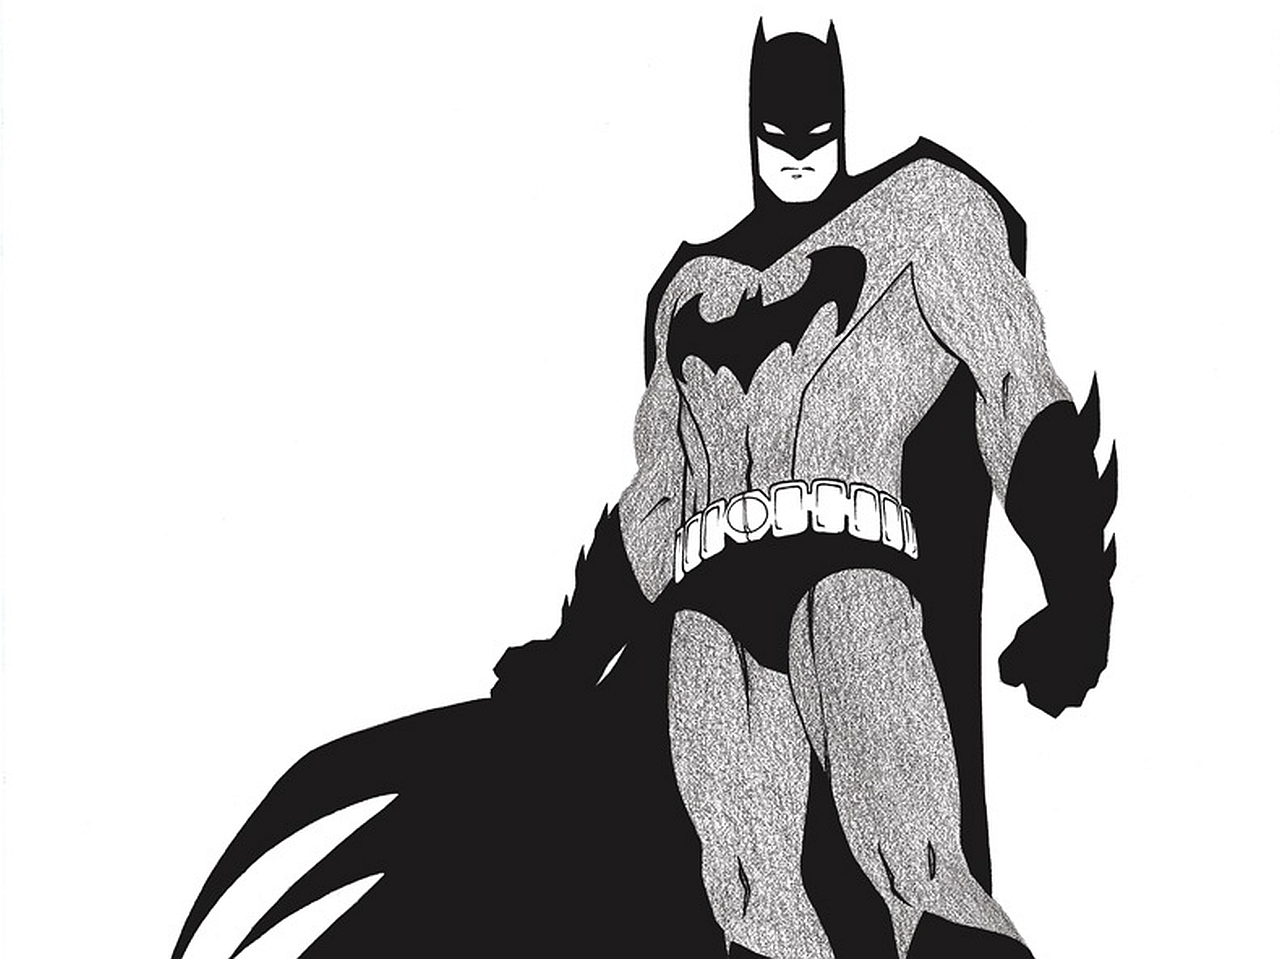 2 Batman Black And White HD Wallpapers | Backgrounds - Wallpaper Abyss